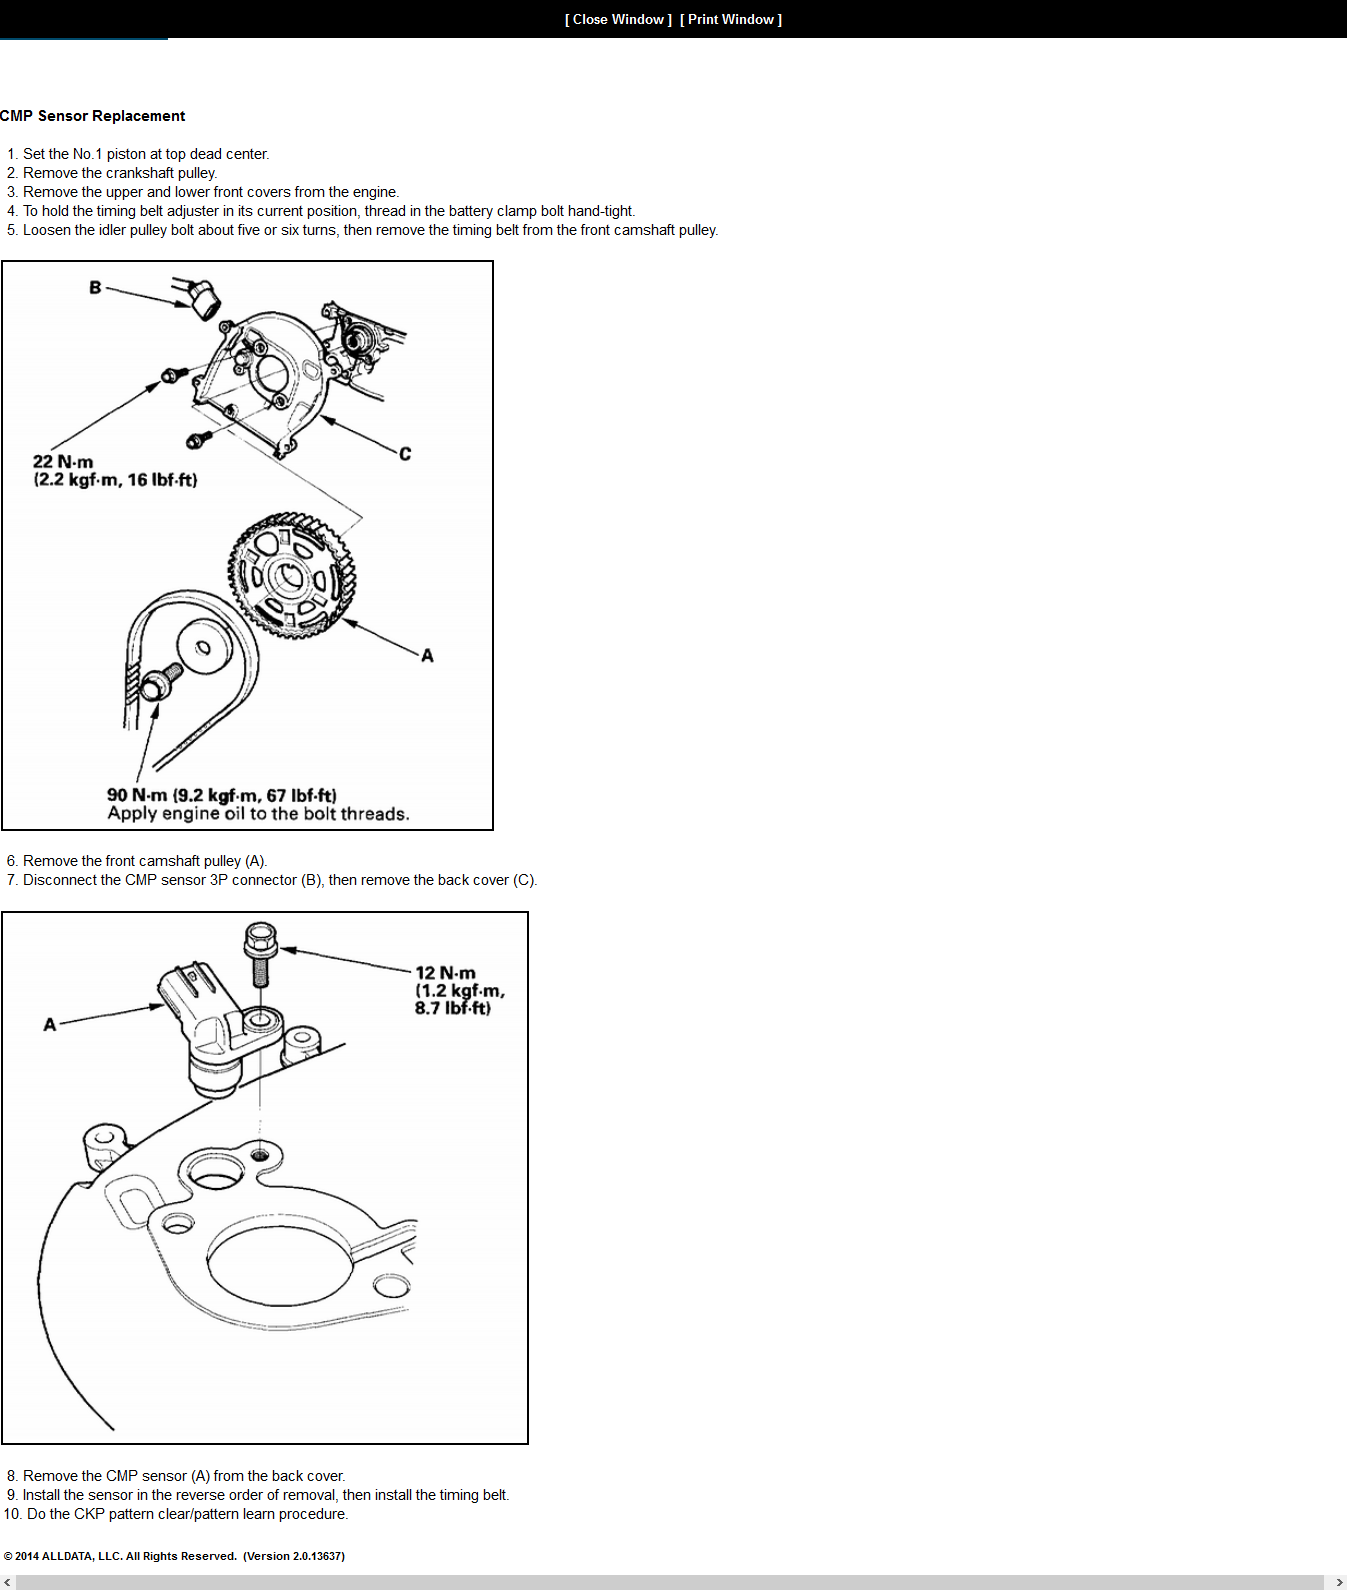 2005 Acura Tl Crankshaft Position Sensor Manual